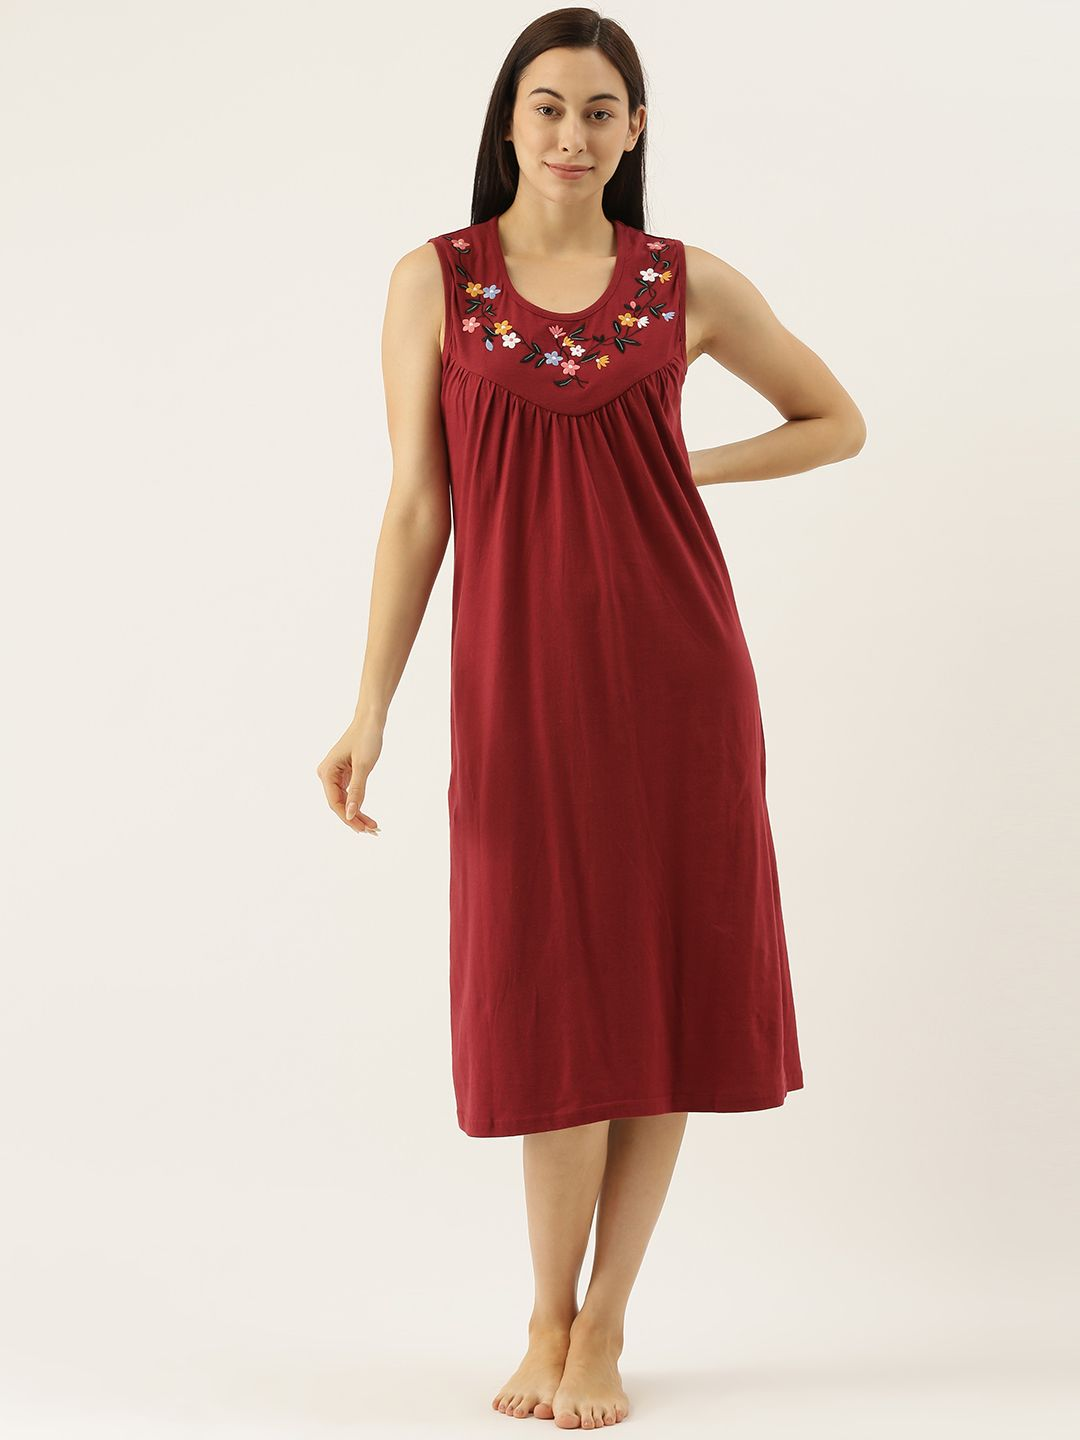 Bordeaux Sleeveless Night Dress with Delicate Flower Embroidery